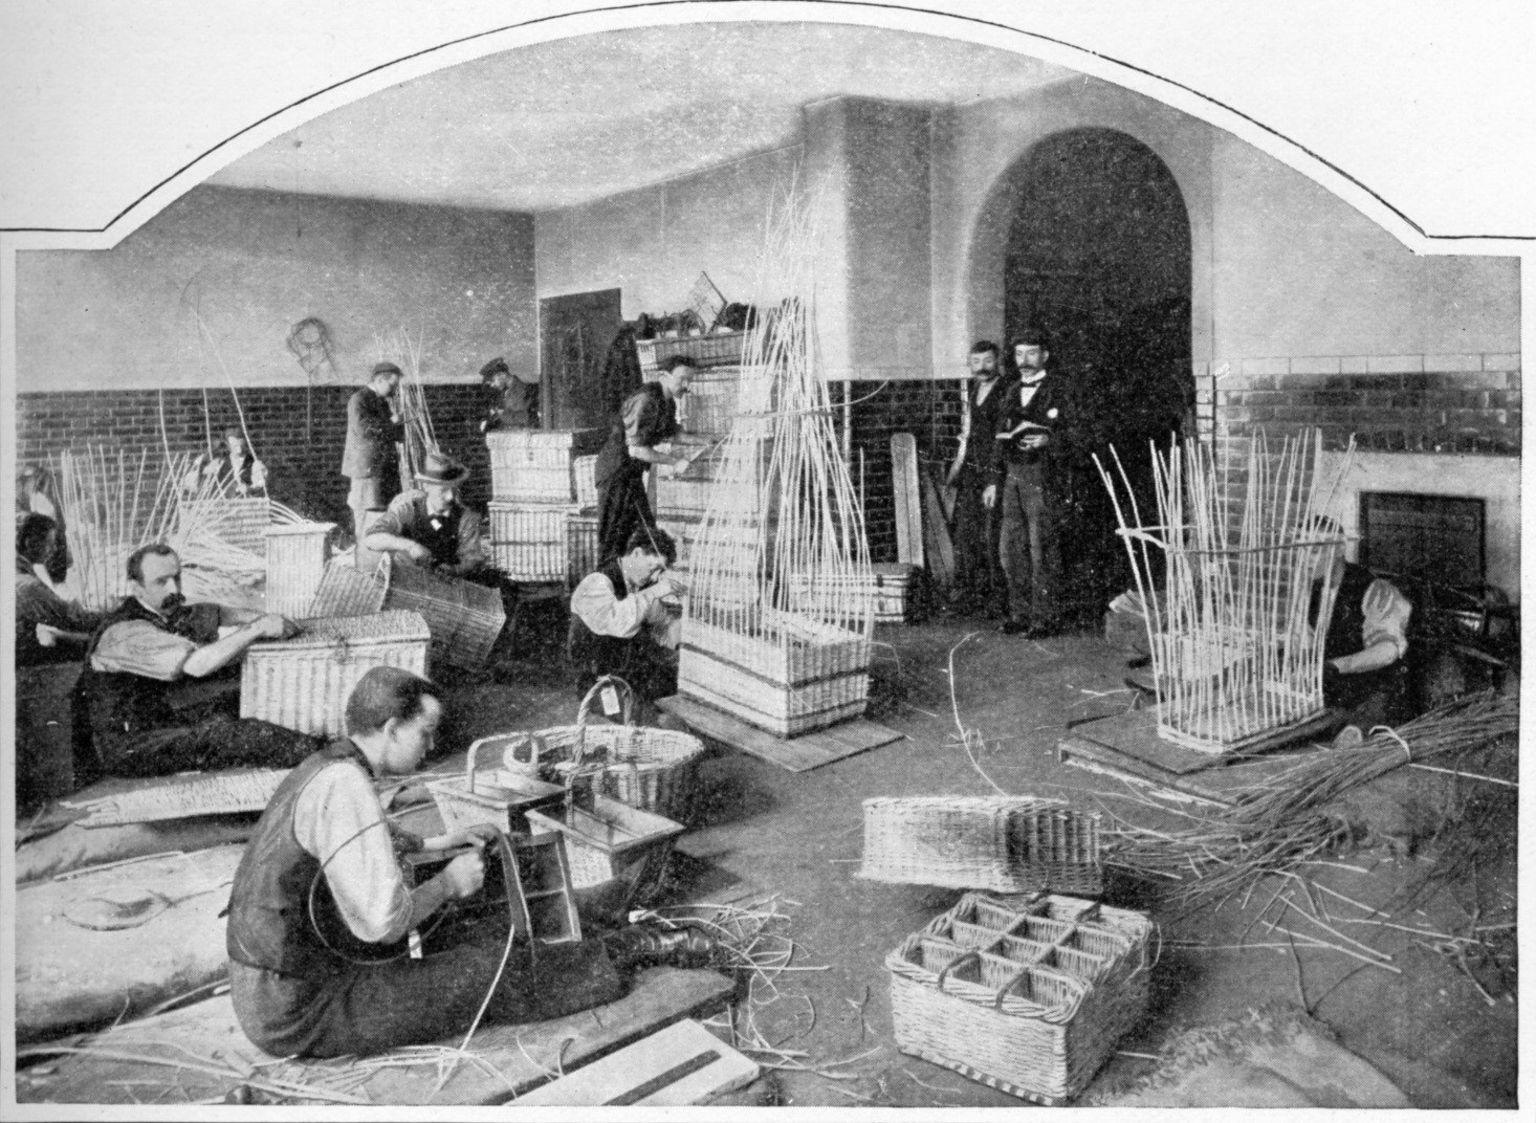 Black and white photo of blind men making baskets